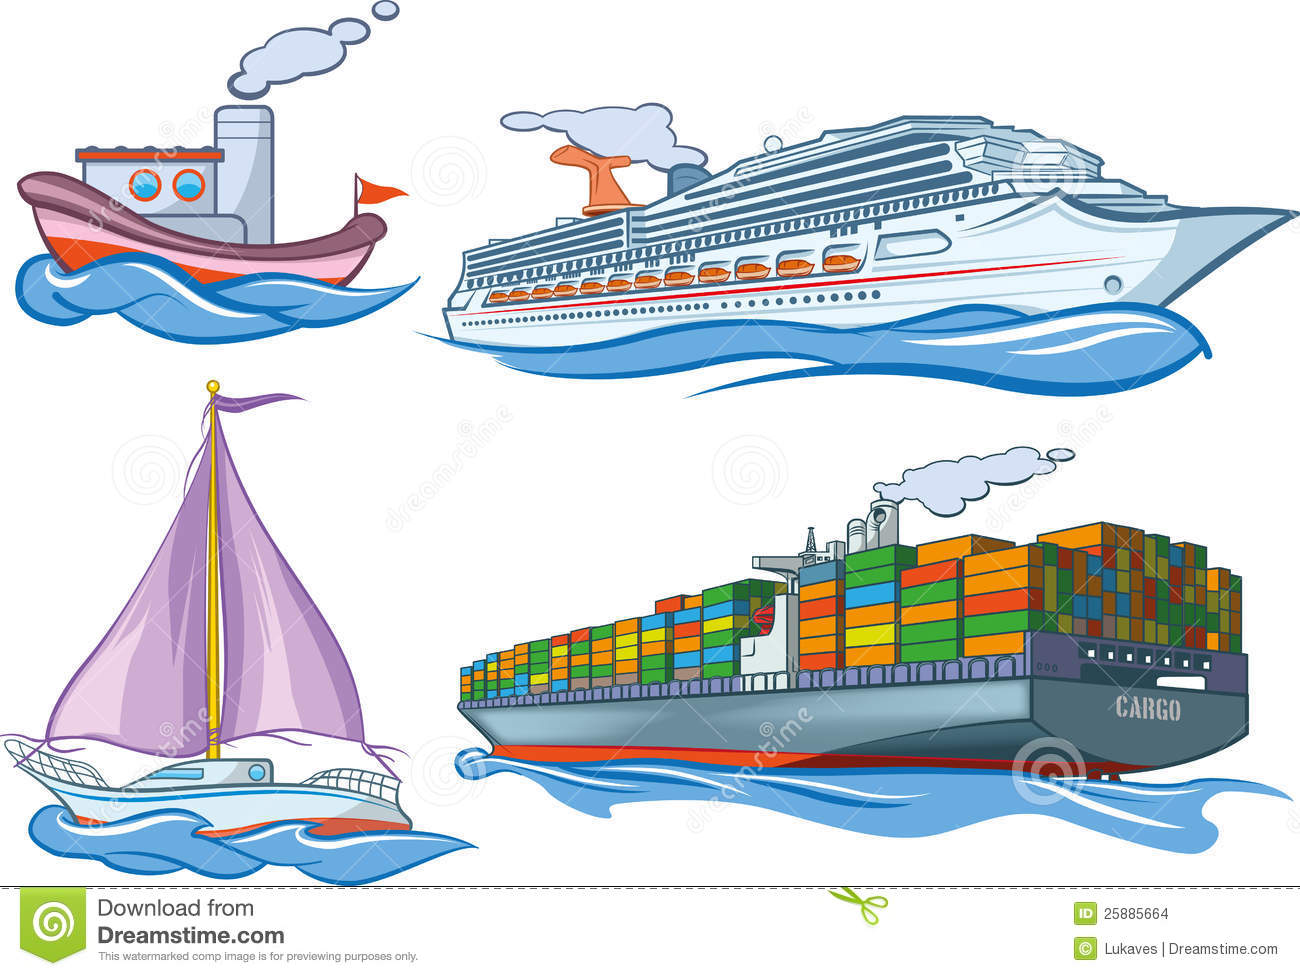 An illustration of several basic types of water transportation.